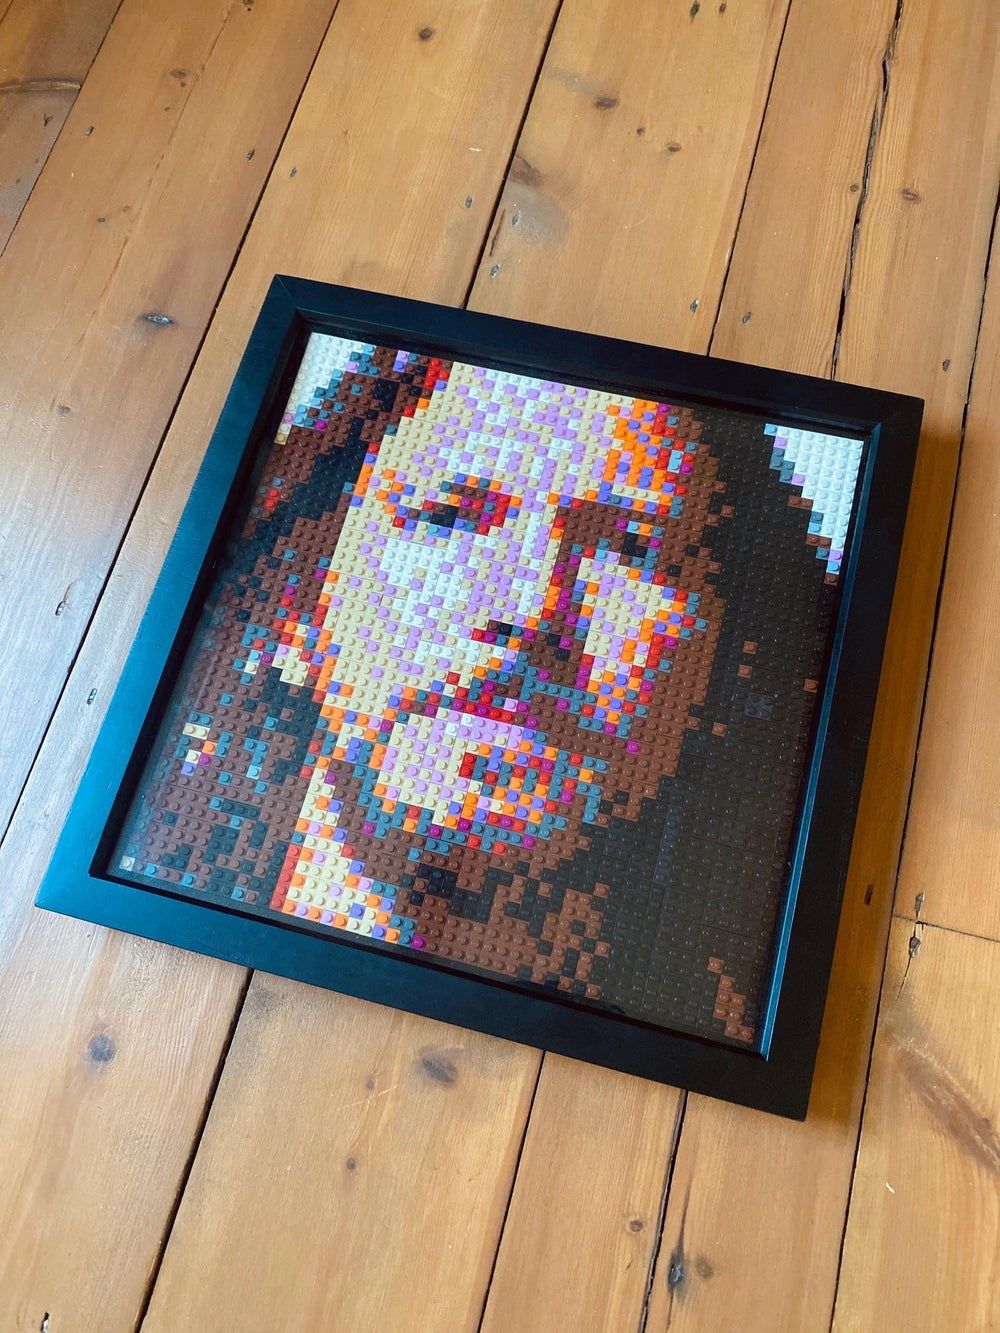 'Eddie in Brick' Lego Art by Grifshead